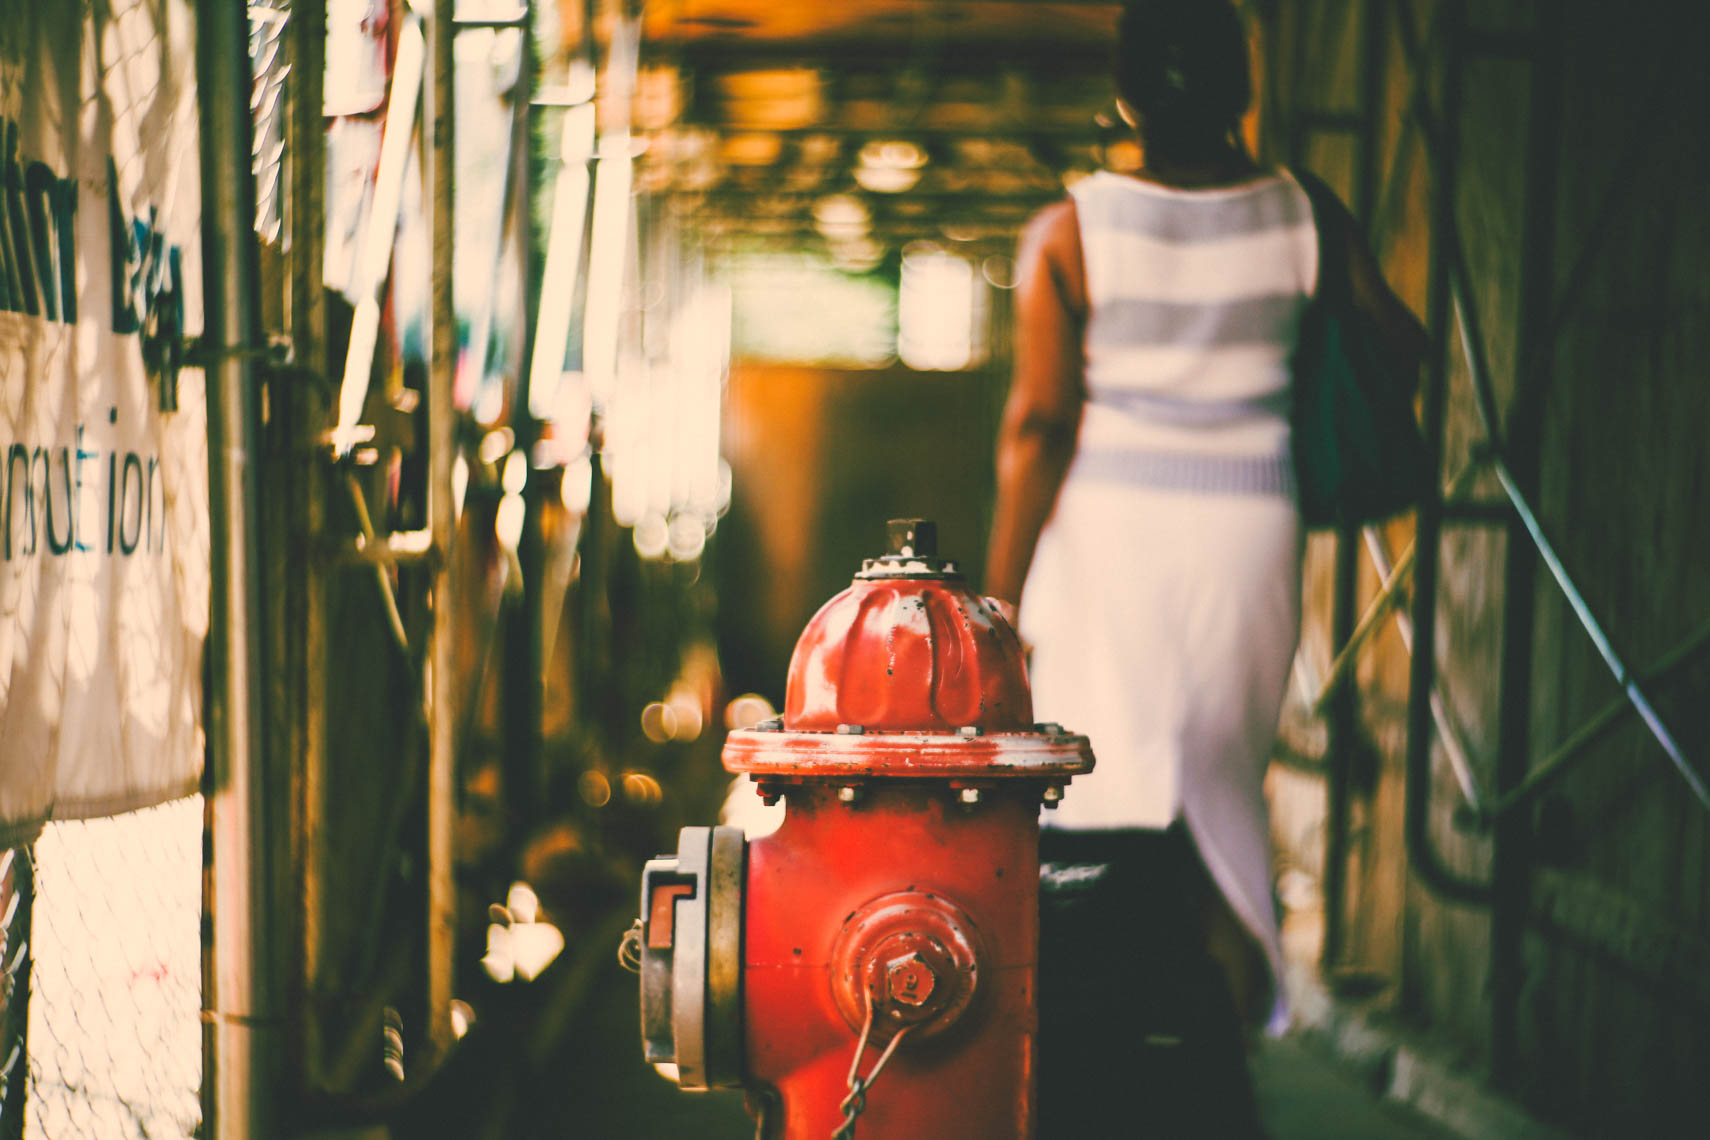 Hydrant and a woman.